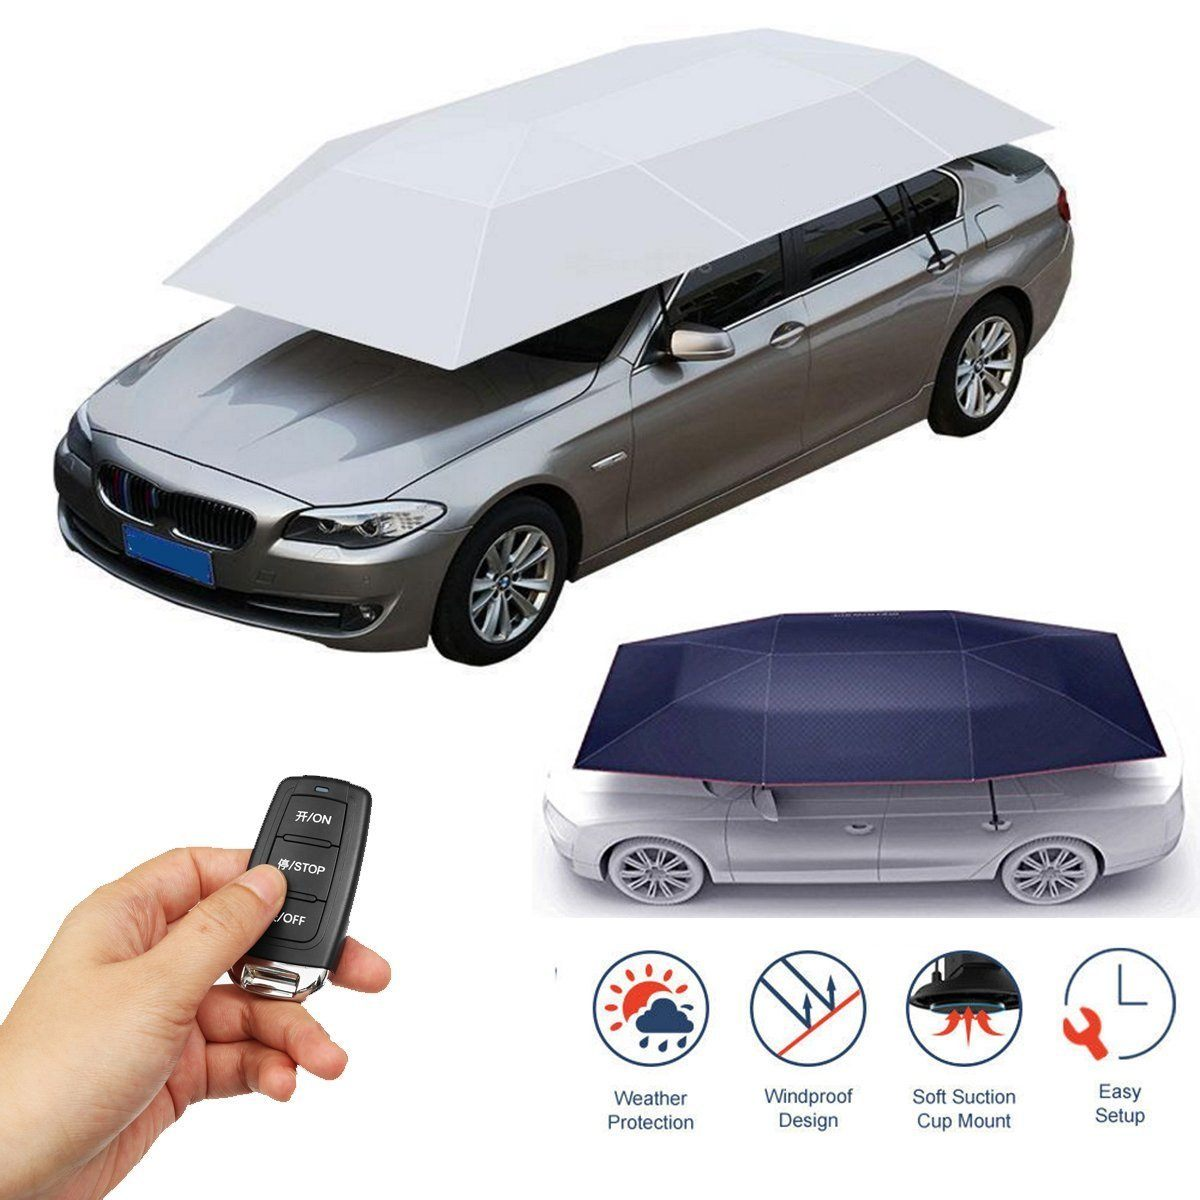 Portable Outdoor Shelter Canopy Stretch Car Sunshade Tent Full Automatic Umbrella  sc 1 st  Dragon Mall SA & Portable Outdoor Shelter Canopy Stretch Car Sunshade Tent Full Automat